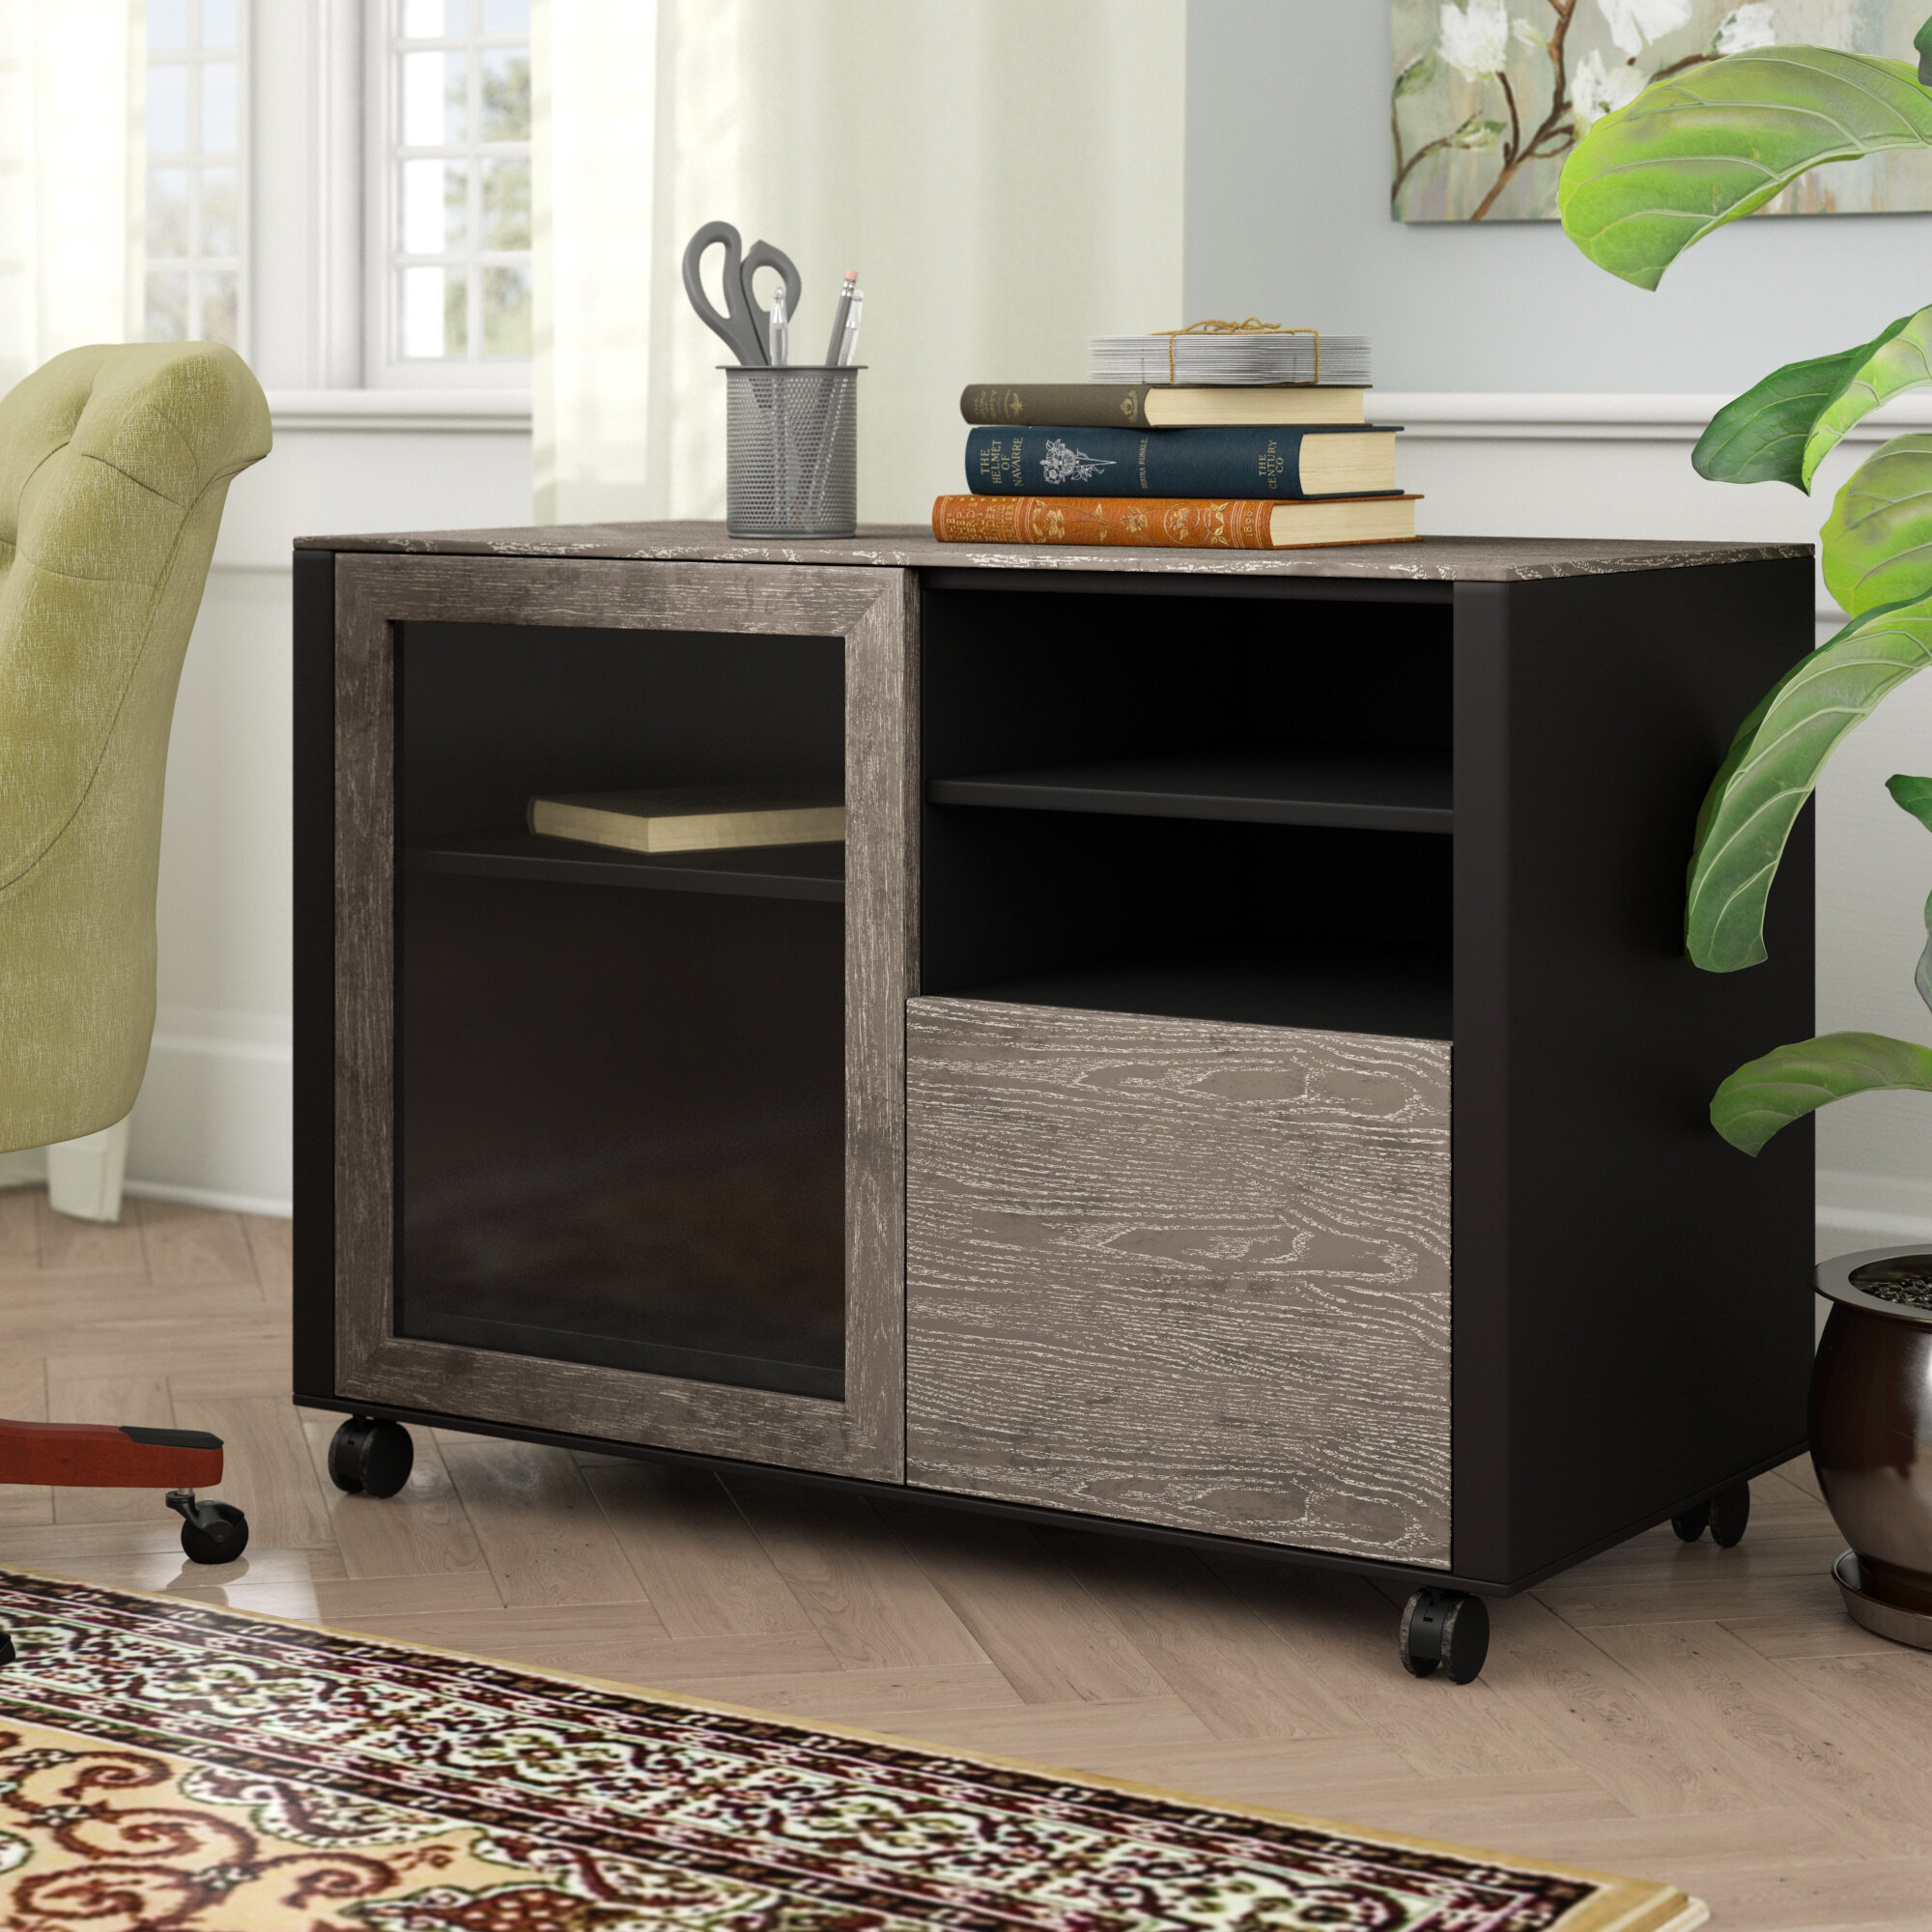 Francella 1 Drawer Lateral Filing Cabinet